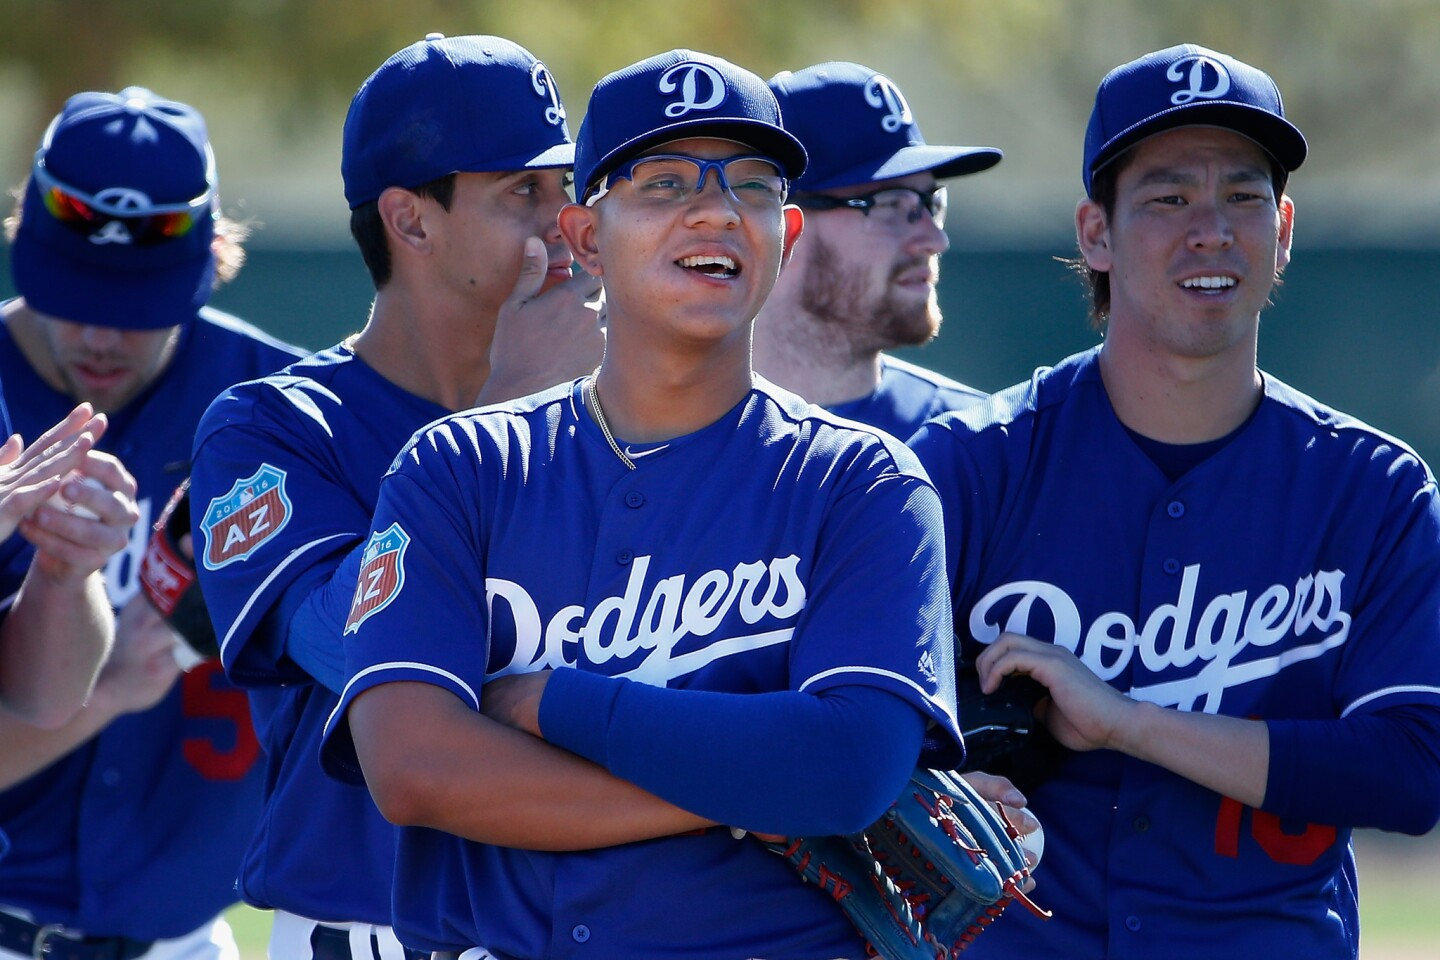 GLENDALE, AZ - FEBRUARY 20: Starting pitcher Julio Urias #78 of the Los Angeles Dodgers participates in a spring training workout at Camelback Ranch on February 20, 2016 in Glendale, Arizona. (Photo by Christian Petersen/Getty Images) ** OUTS - ELSENT, FPG, CM - OUTS * NM, PH, VA if sourced by CT, LA or MoD **